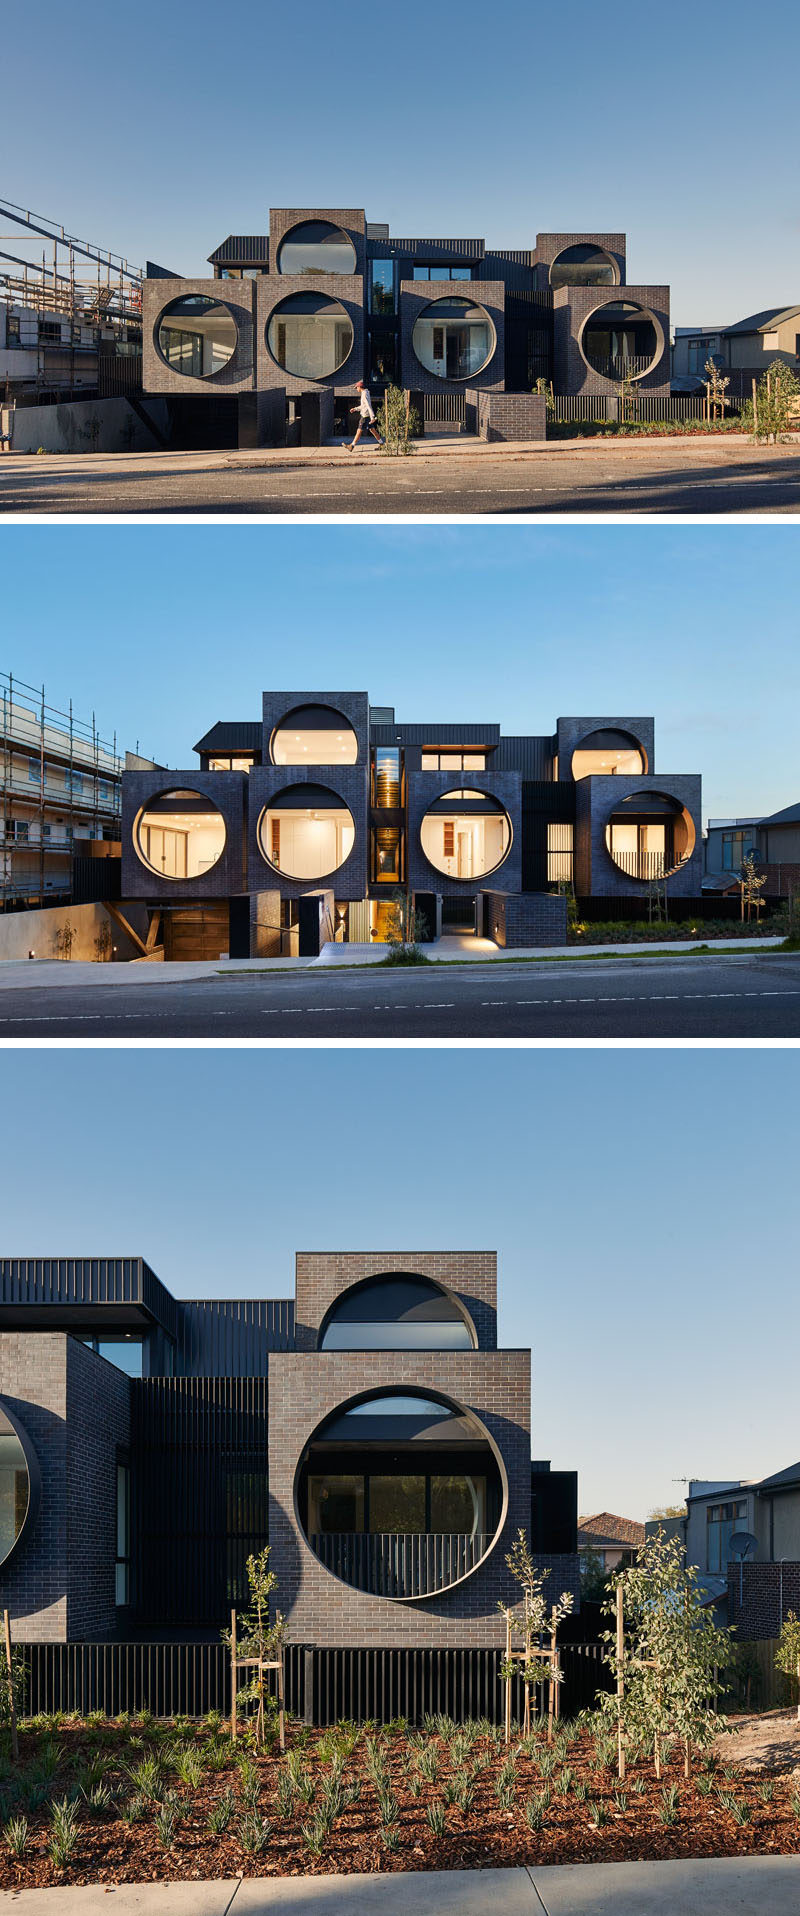 BKK Architects have recently completed the Cirqua Apartments that feature large porthole windows that face the street, and an exterior of weathered brick and standing seam metal. #Architecture #ApartmentBuilding #Windows #Brick